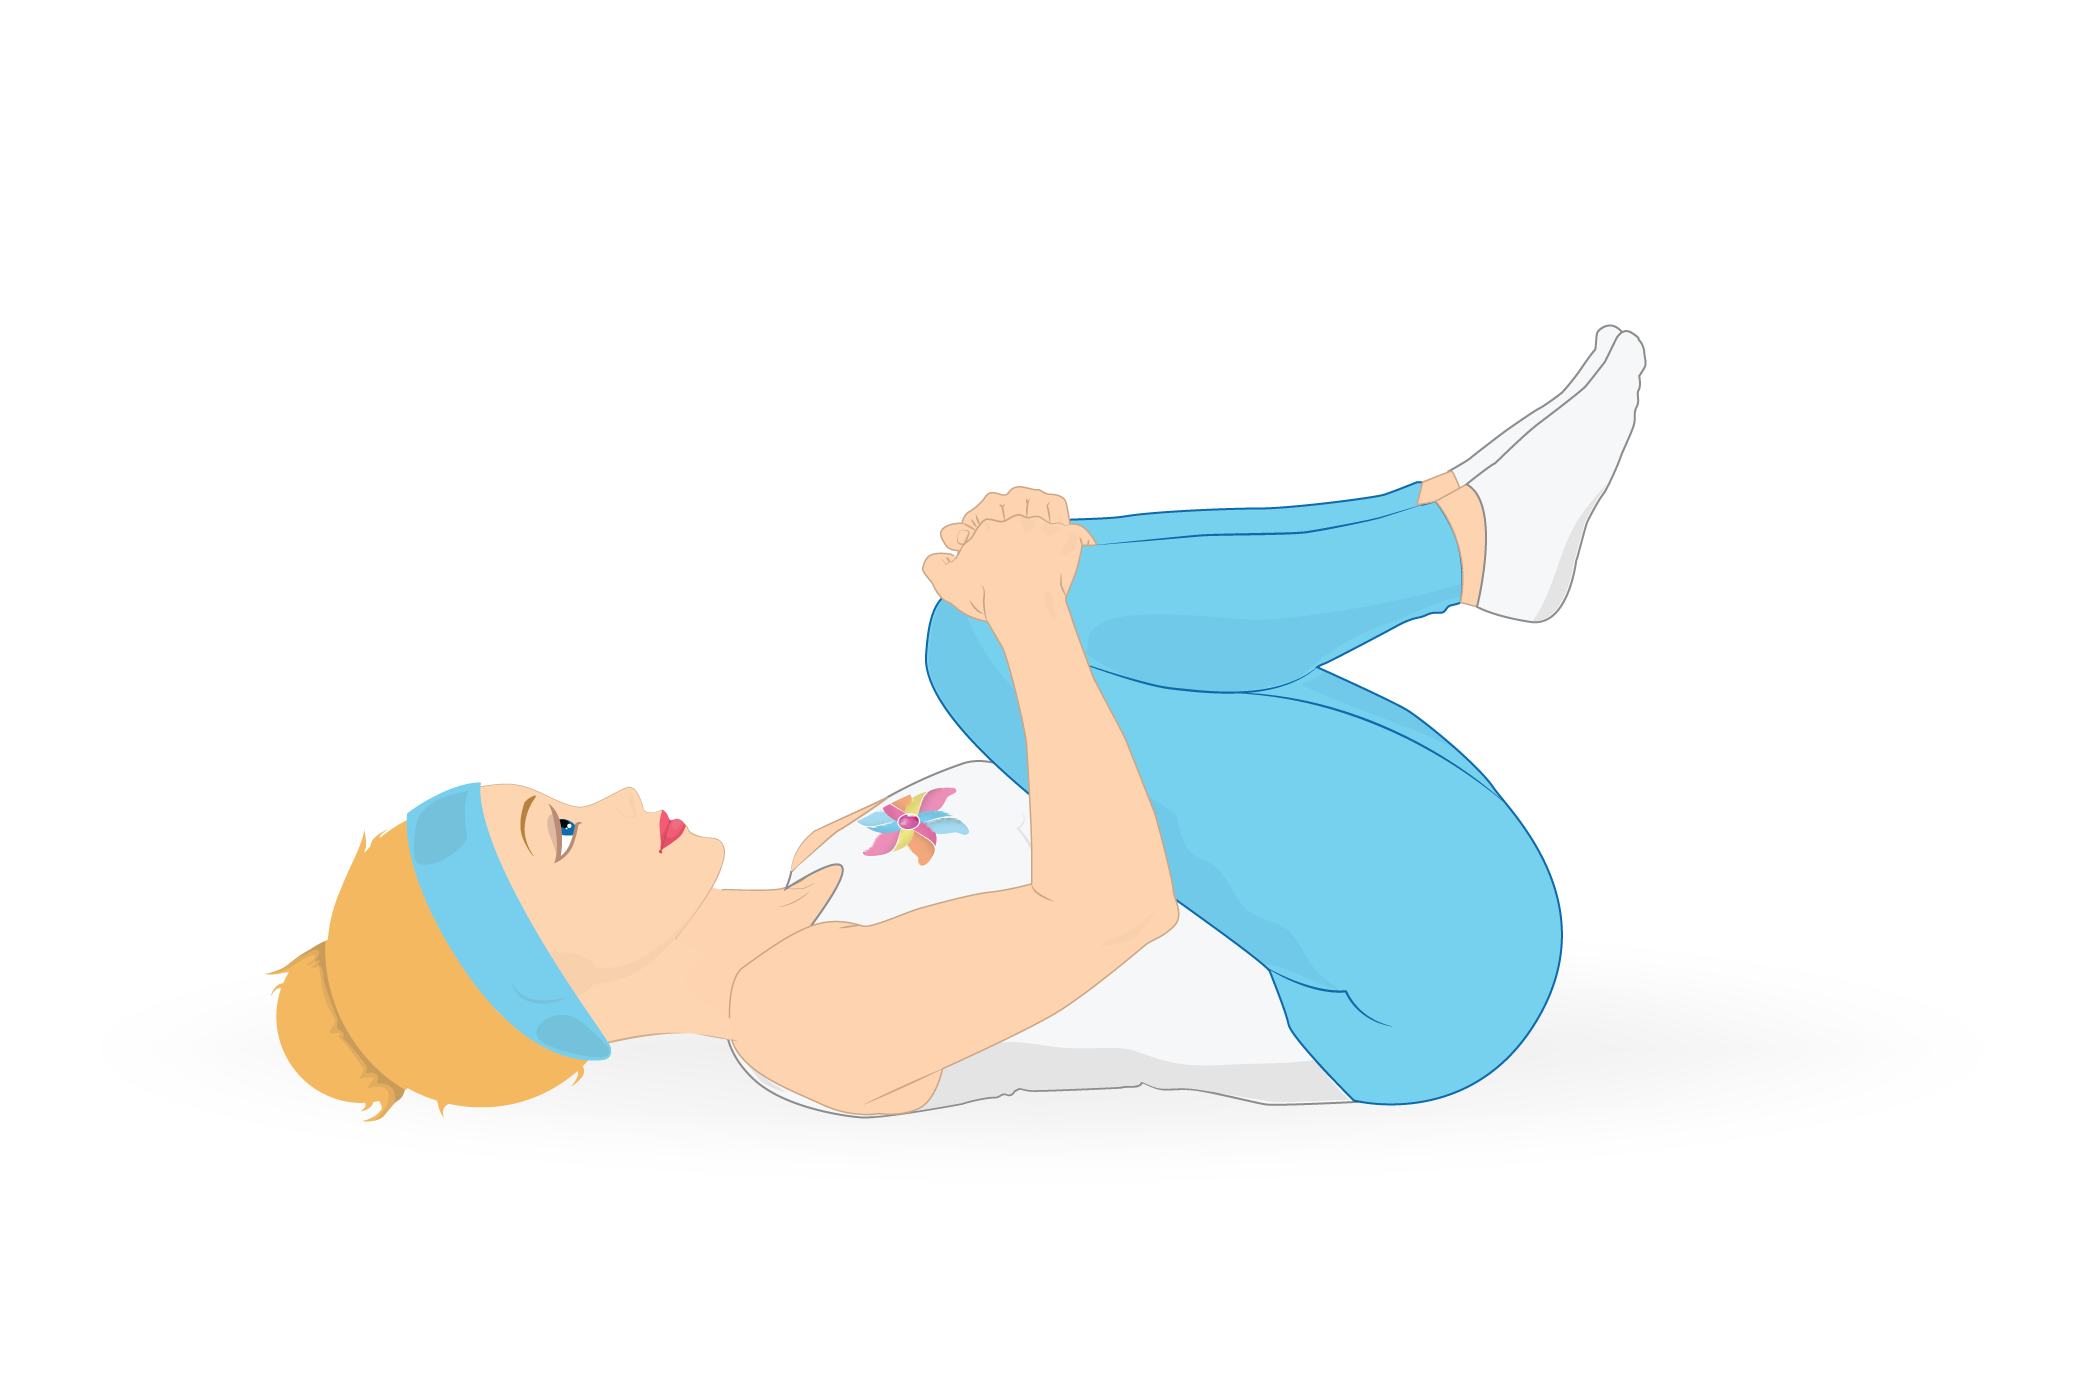 Pain clipart backache. Behappymum stretches to relieve